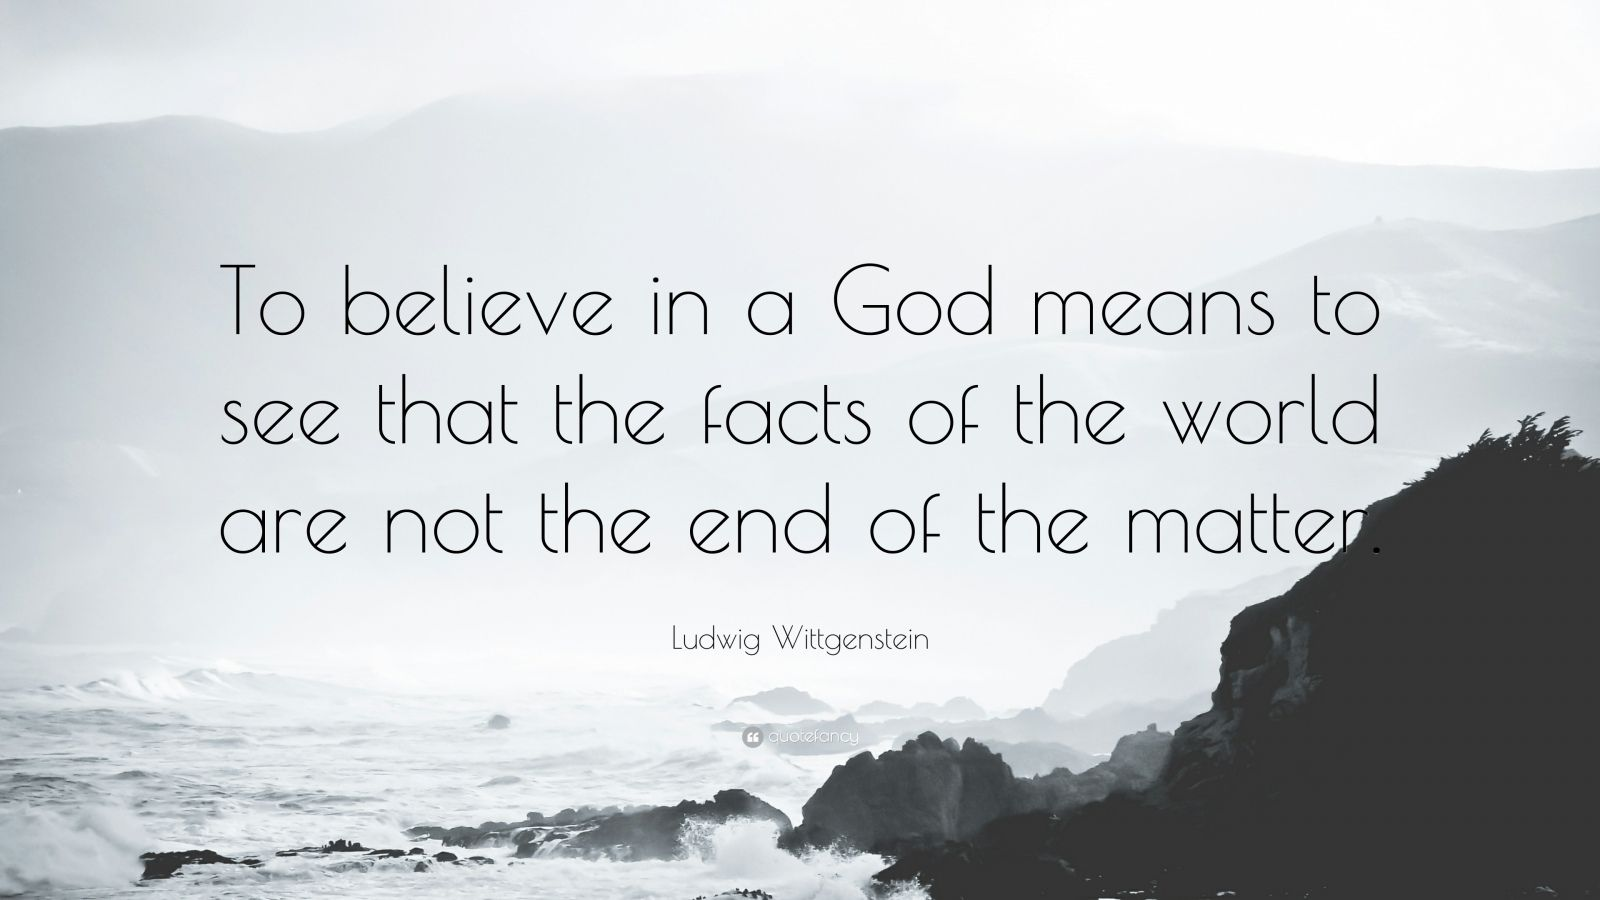 """Ludwig Wittgenstein Quote: """"To believe in a God means to see that the facts of the world are not the end of the matter."""""""